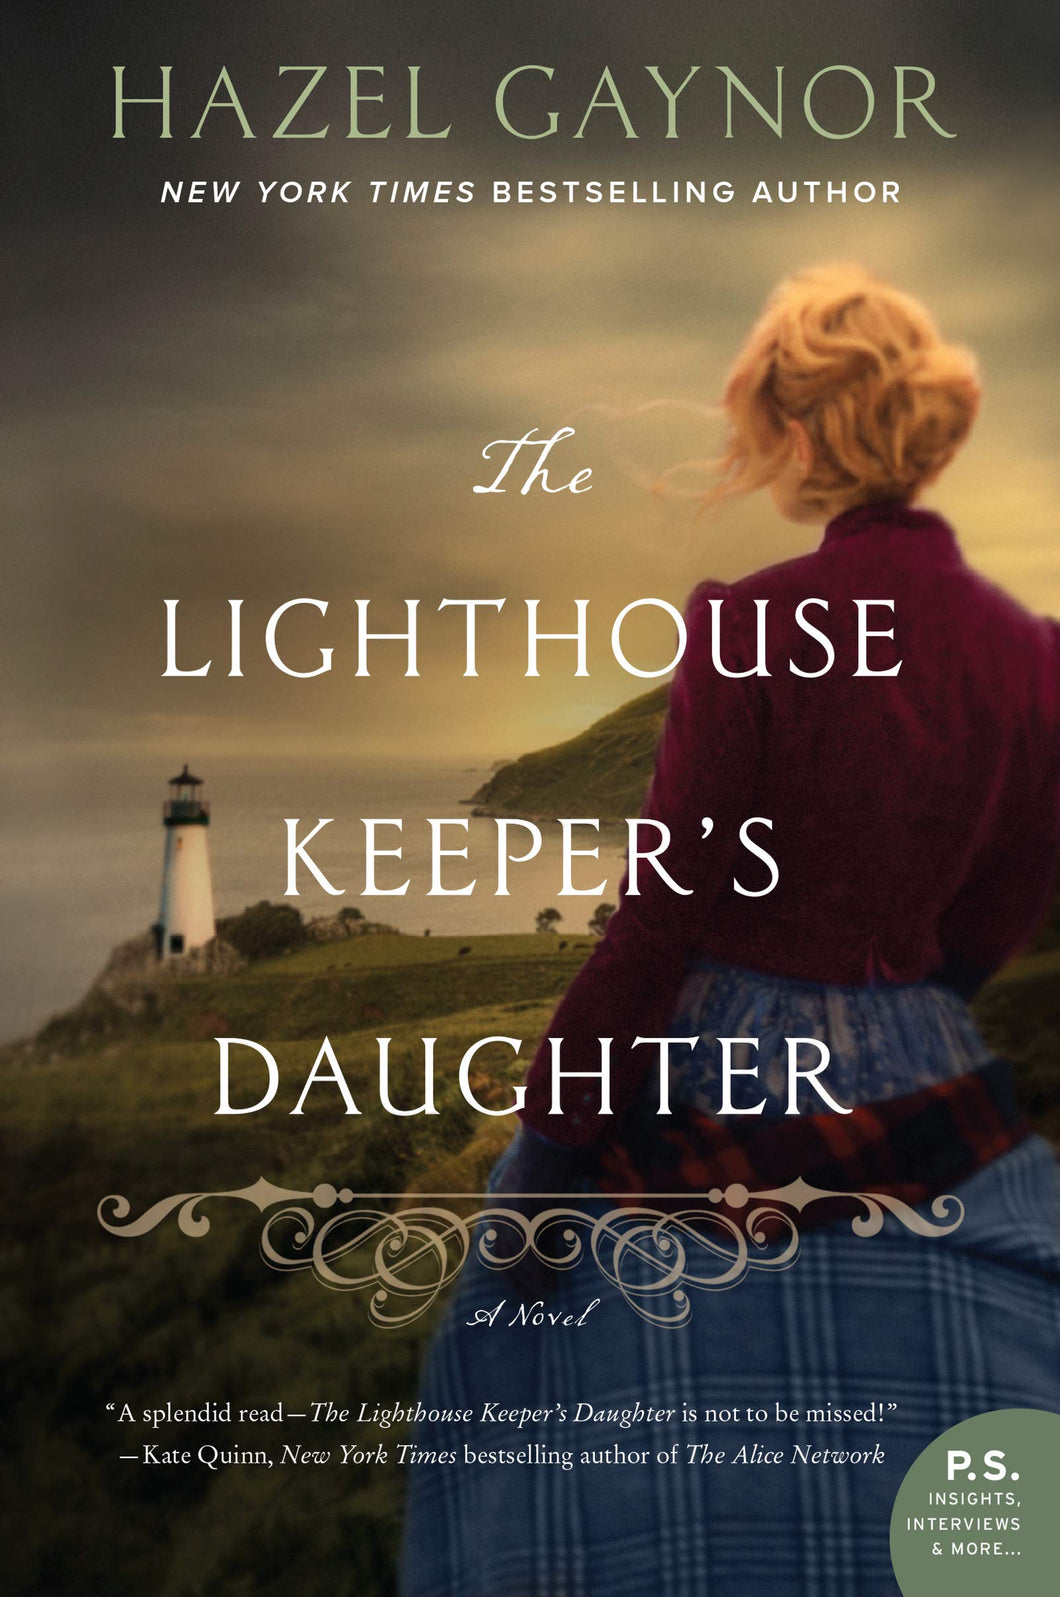 The Lighthouse Keeper's Daughter: A Novel